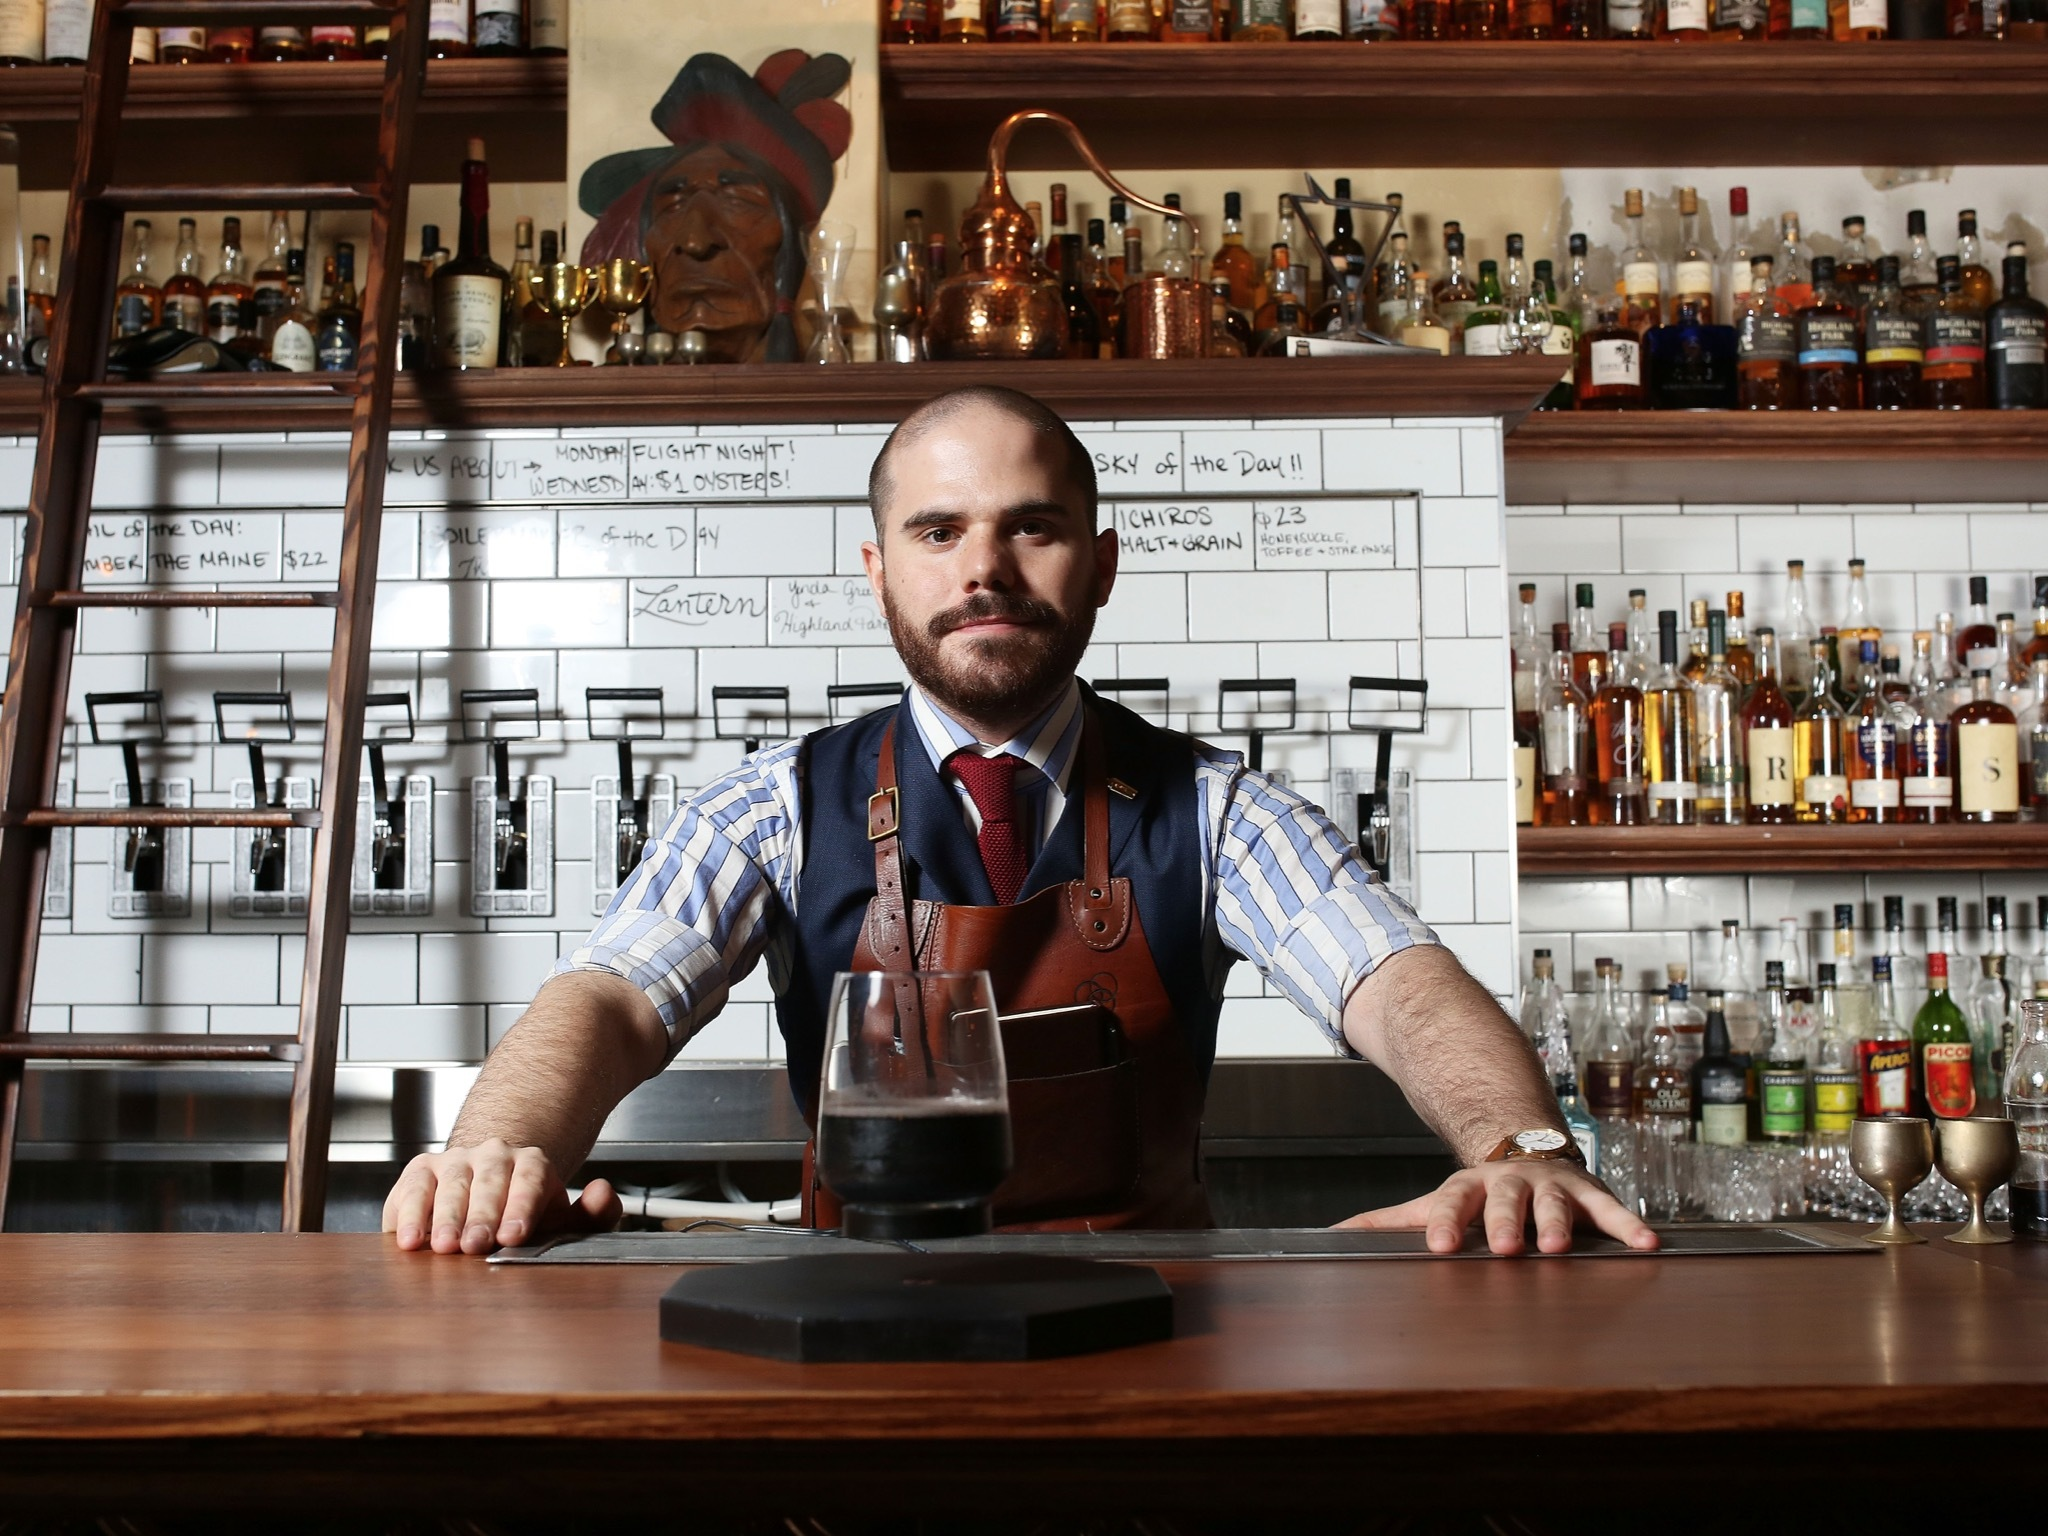 A portrait shot of bartender Jack Sotti behind the bar at Boiler